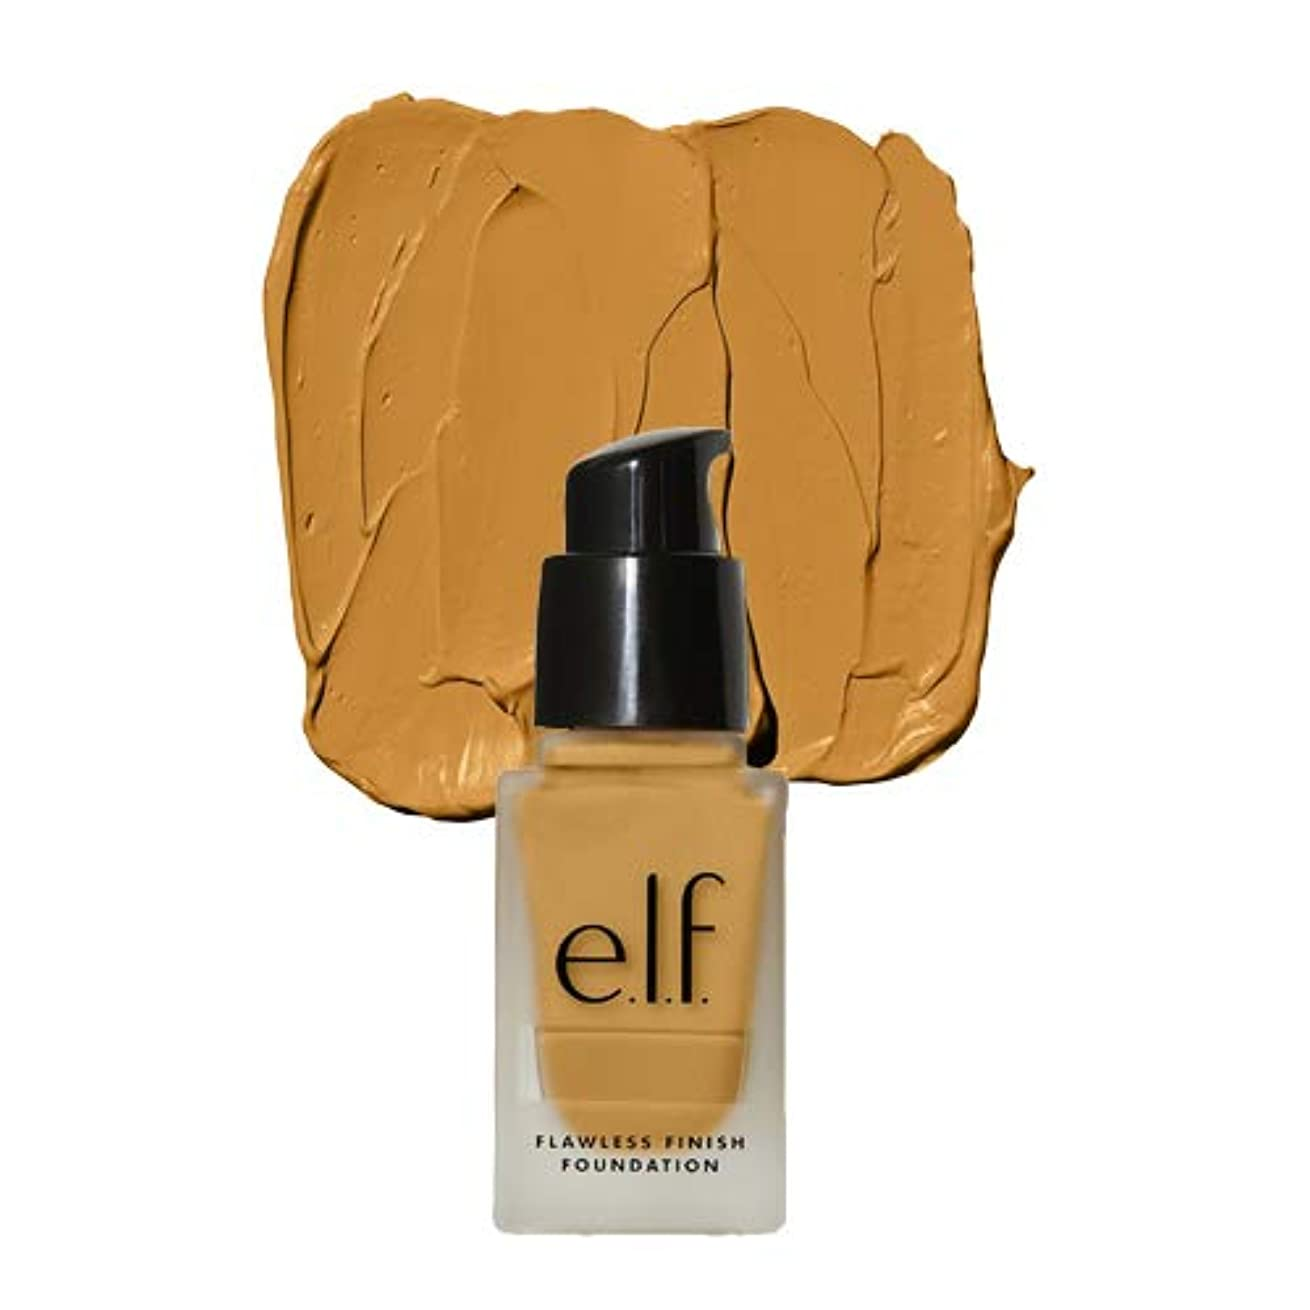 項目止まる用量(3 Pack) e.l.f. Oil Free Flawless Finish Foundation - Almond (並行輸入品)